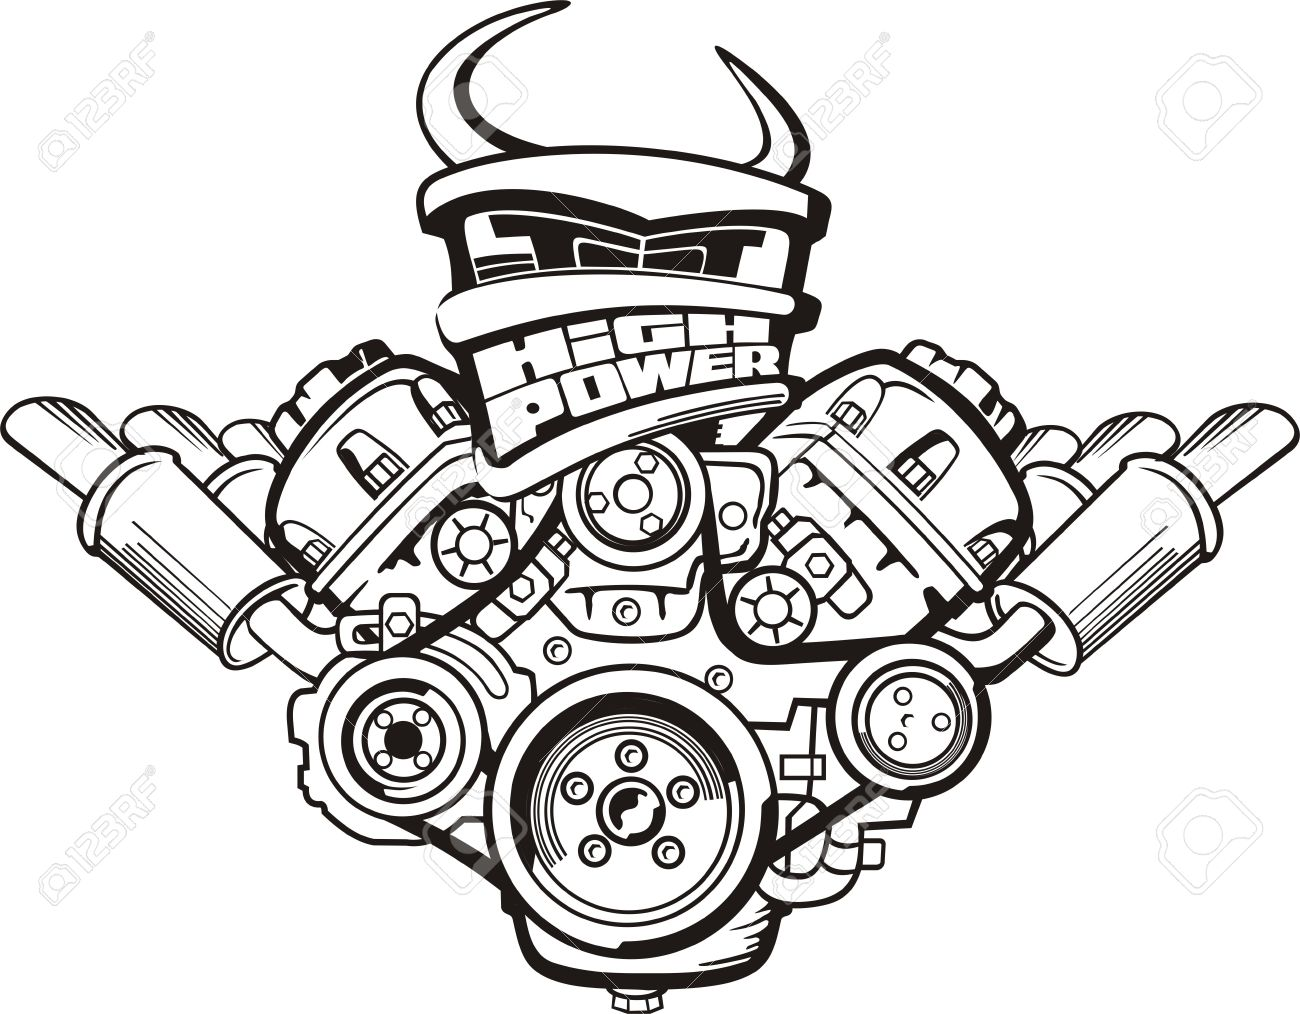 Drawing high power car engine sign royalty free cliparts vectors